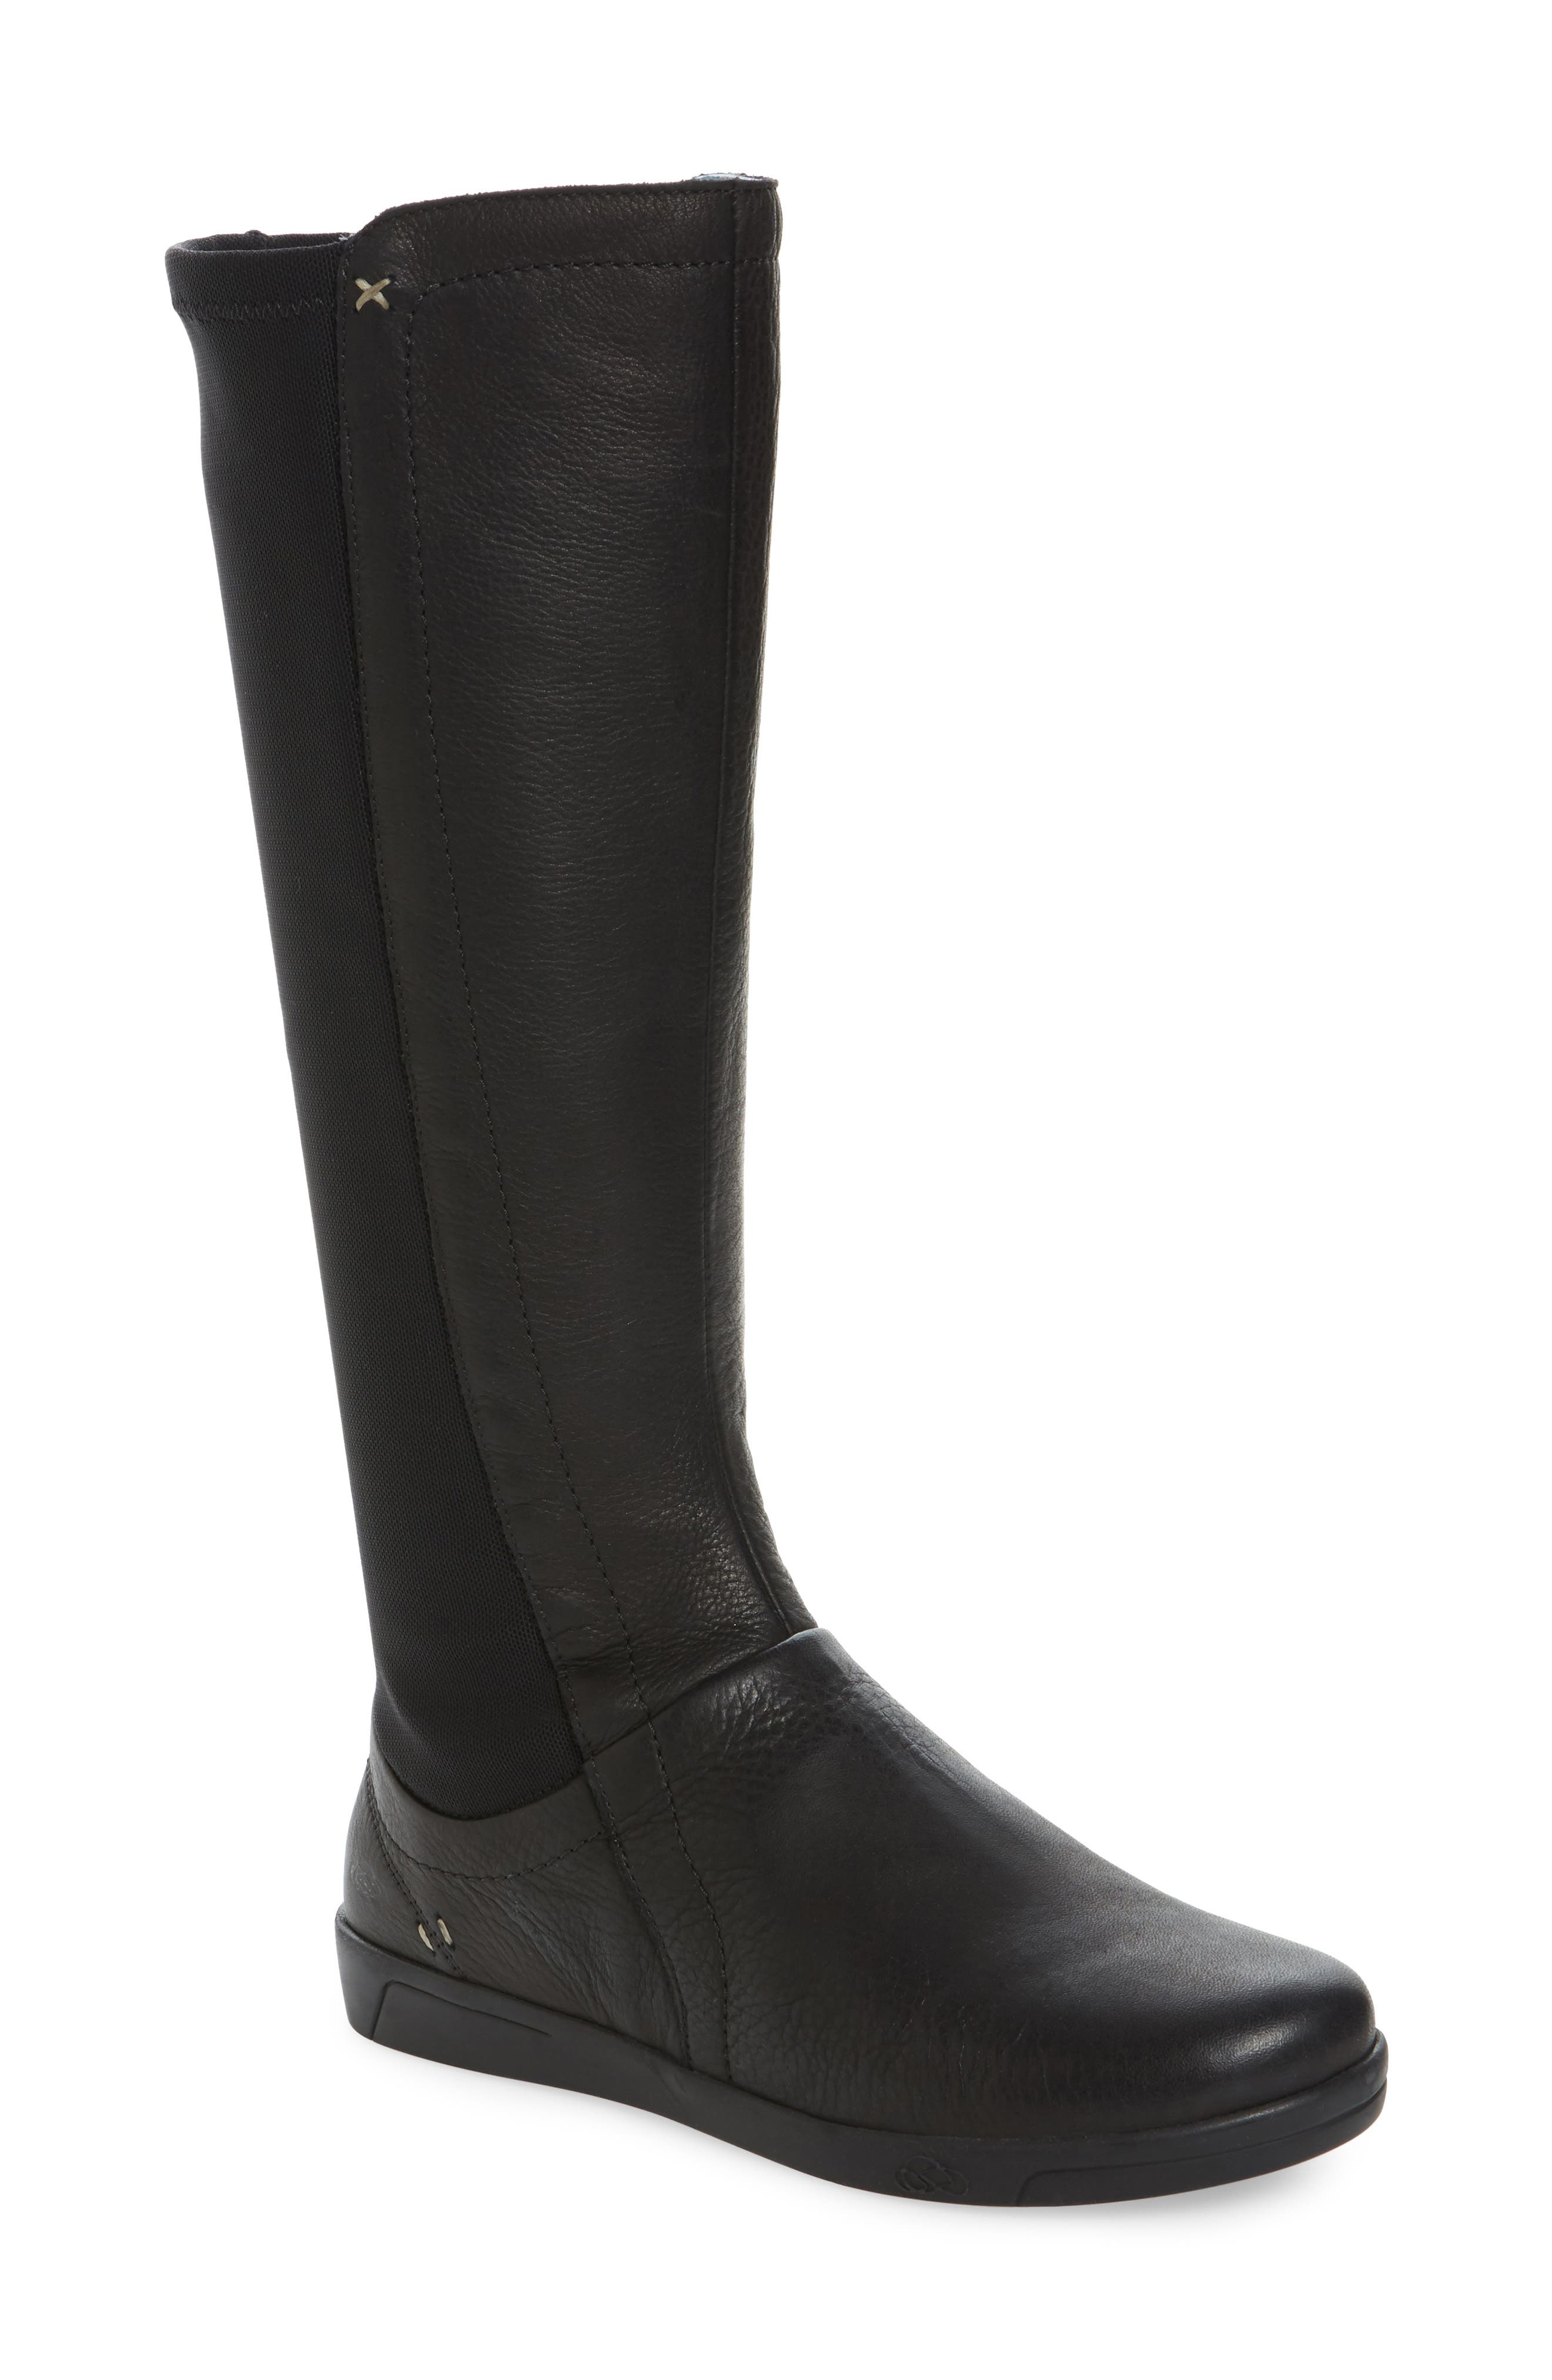 Ace Tall Boot,                         Main,                         color, Black Leather